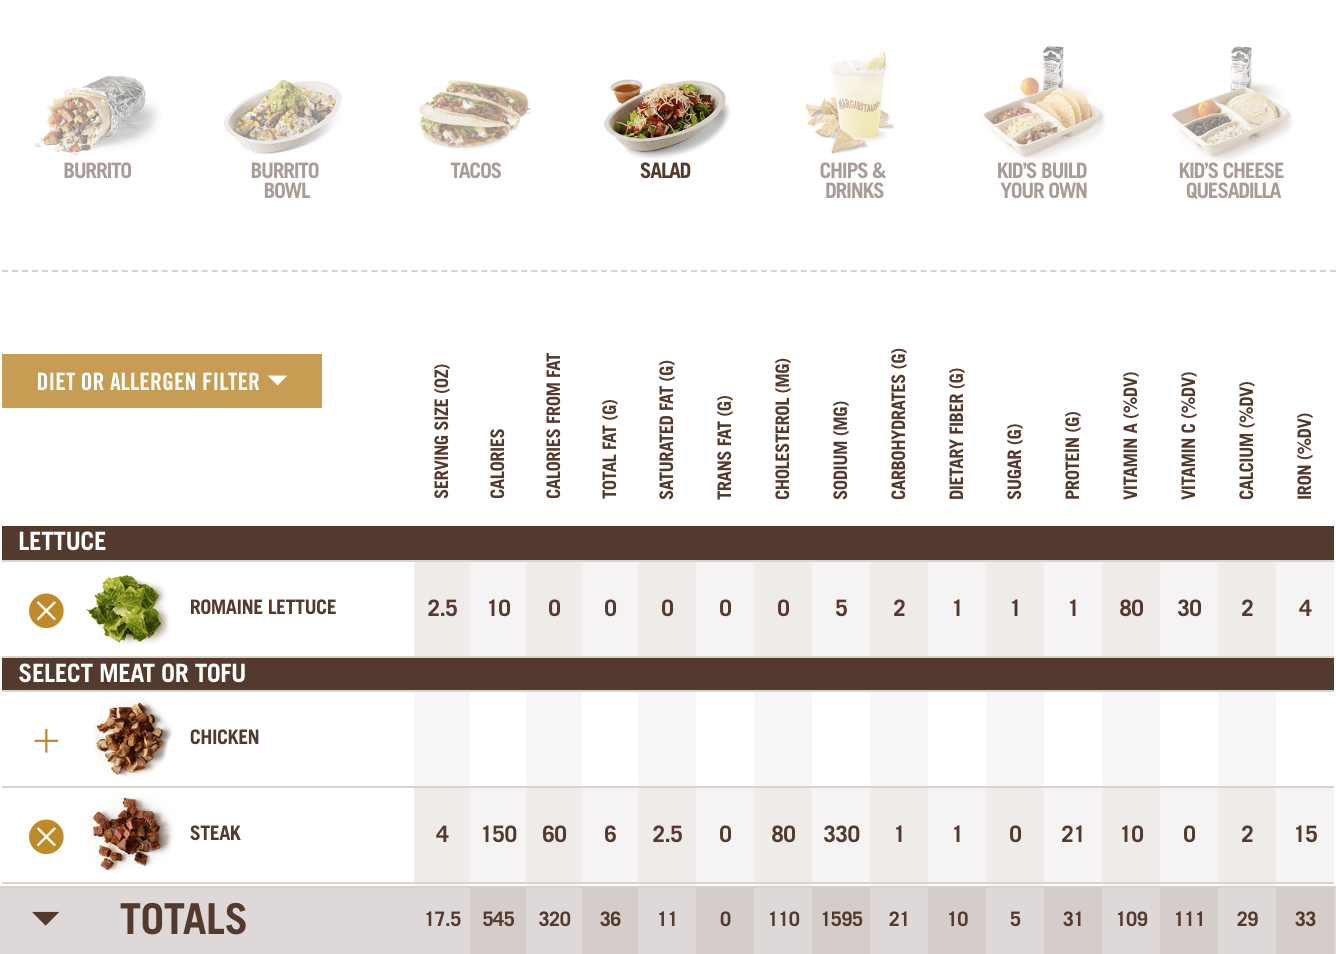 Screen shot of Chipotle nutrition calculator based on a keto chipotle order with steak